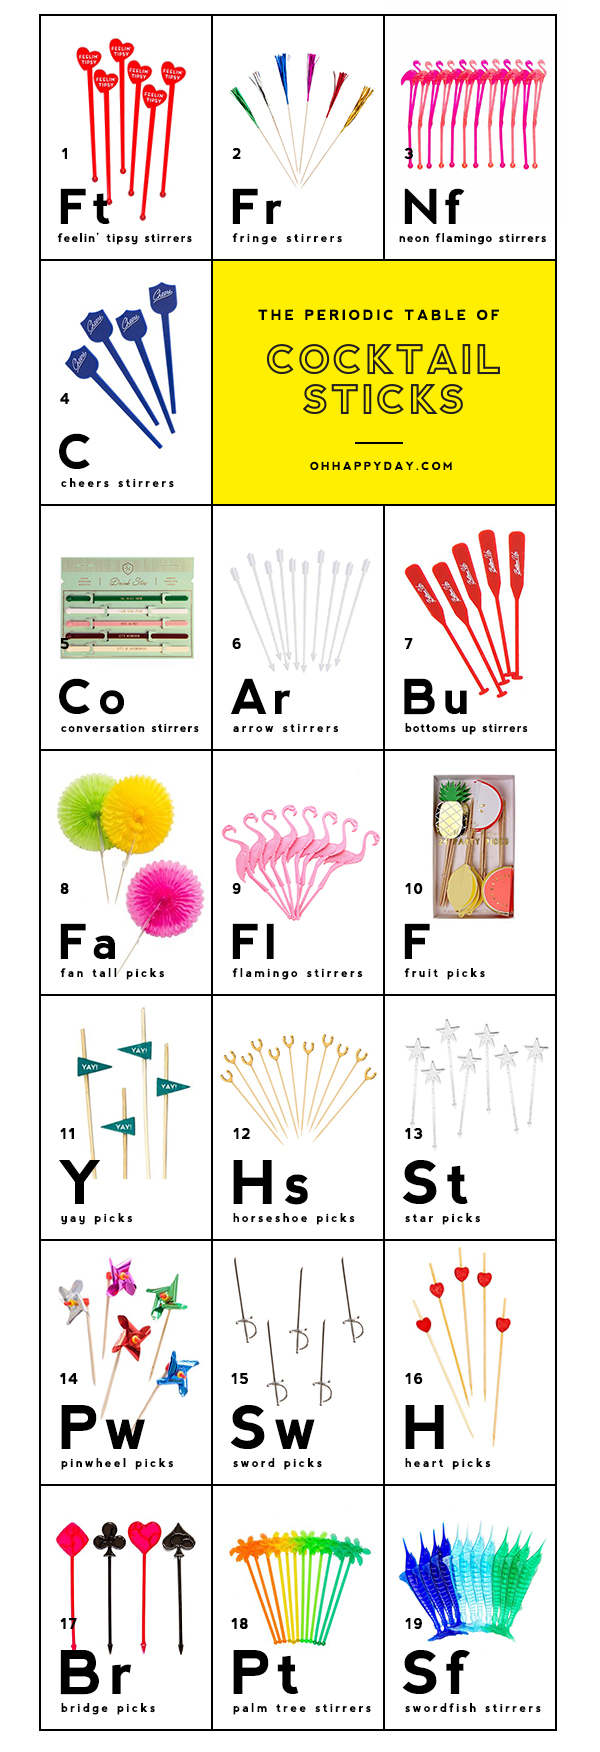 The Periodic Table of Cocktail Sticks | Oh Happy Day!